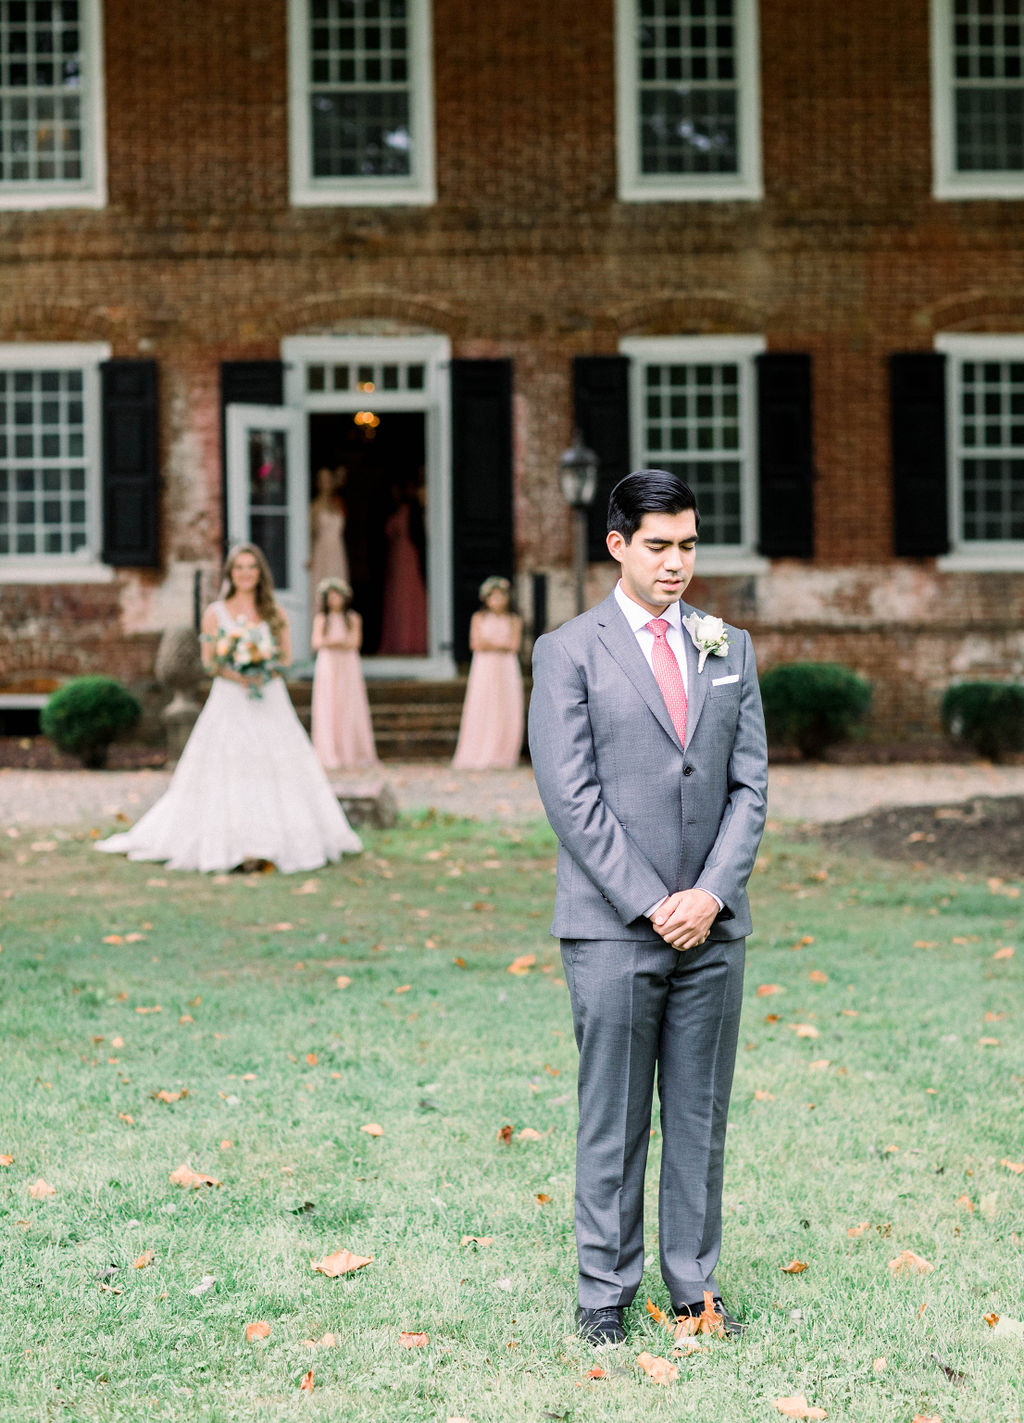 worsell-manor-wedding-kate-guillermo-08.jpg